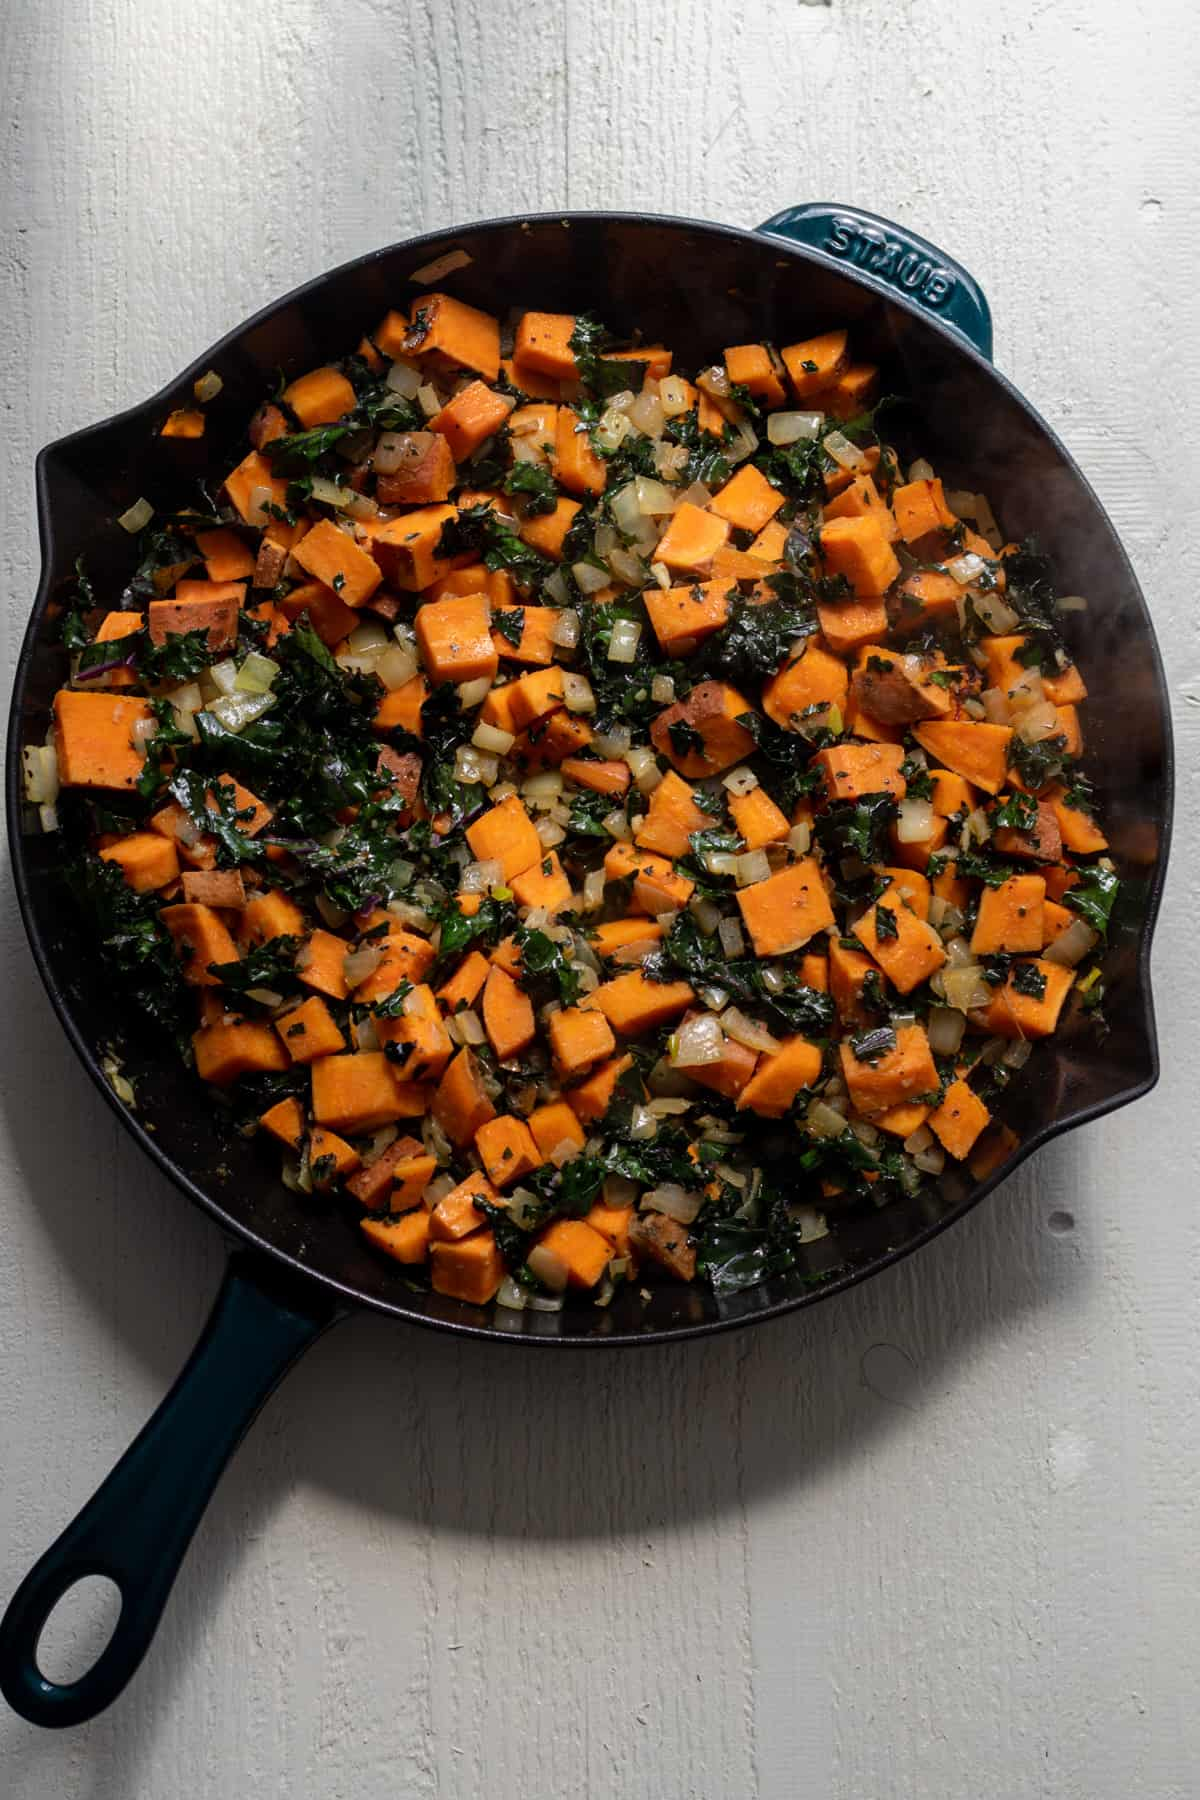 Kale tossed with sweet potato.